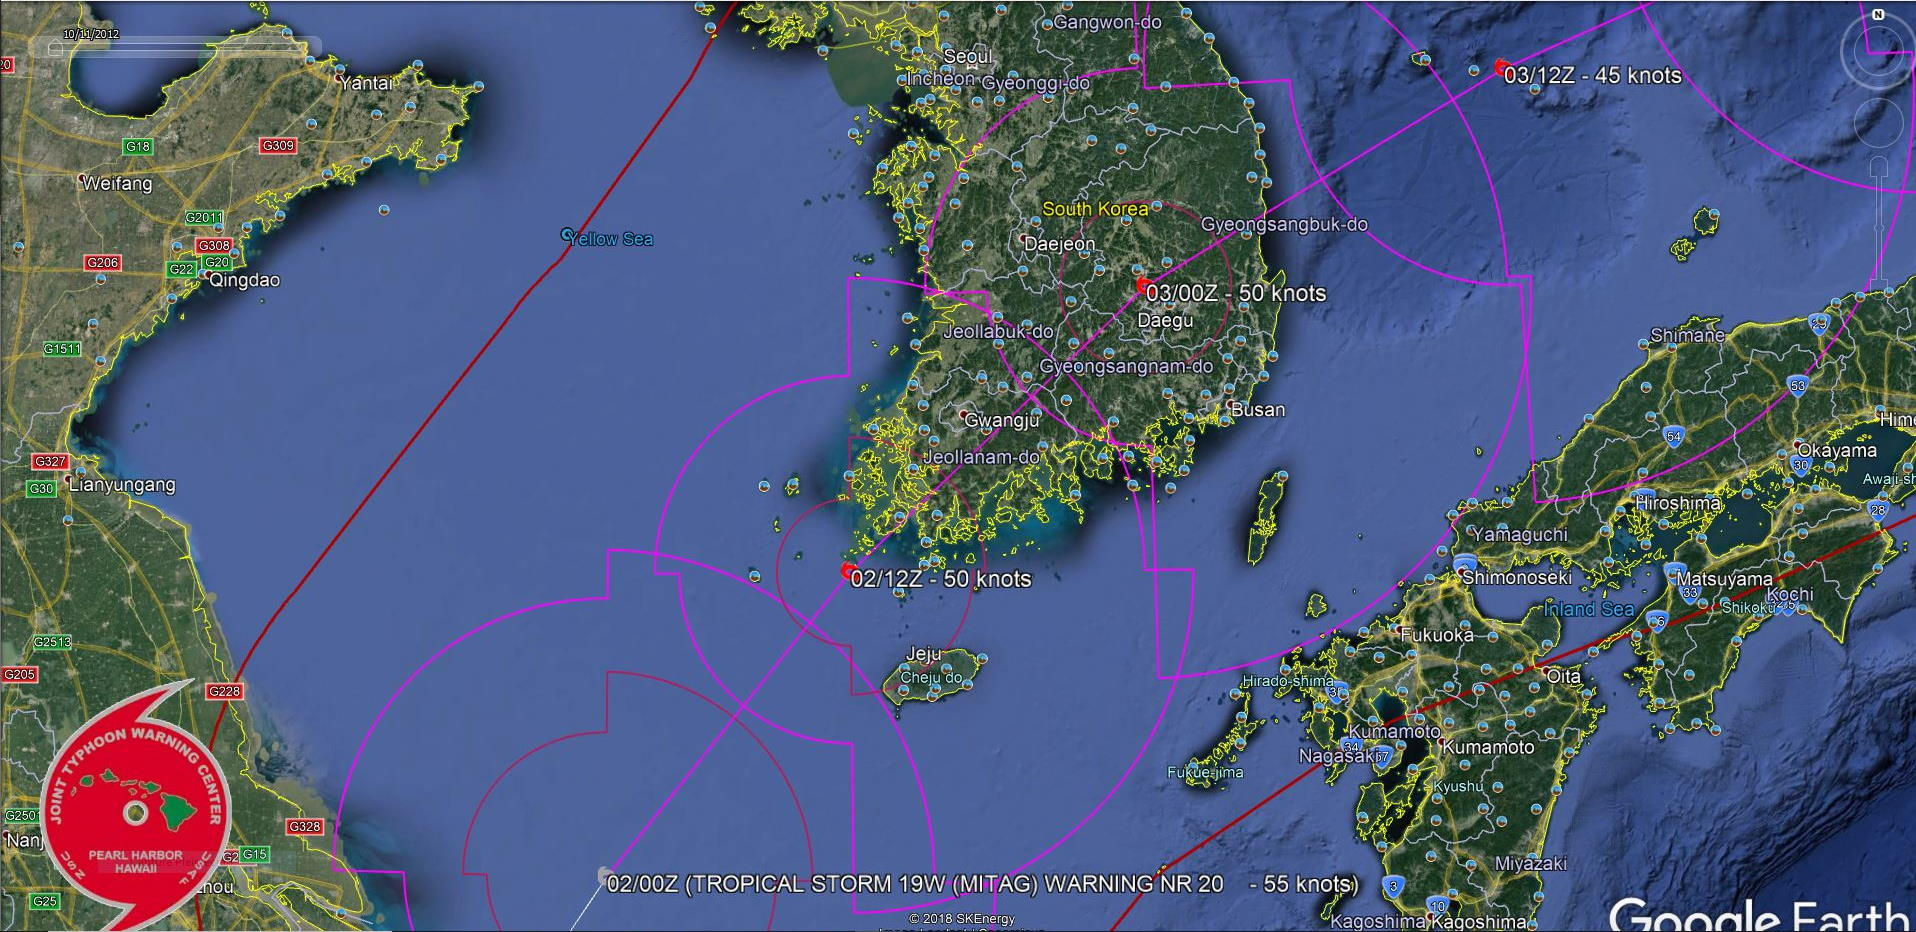 LANDFALL OVER SOUTH KOREA WITHIN 12H